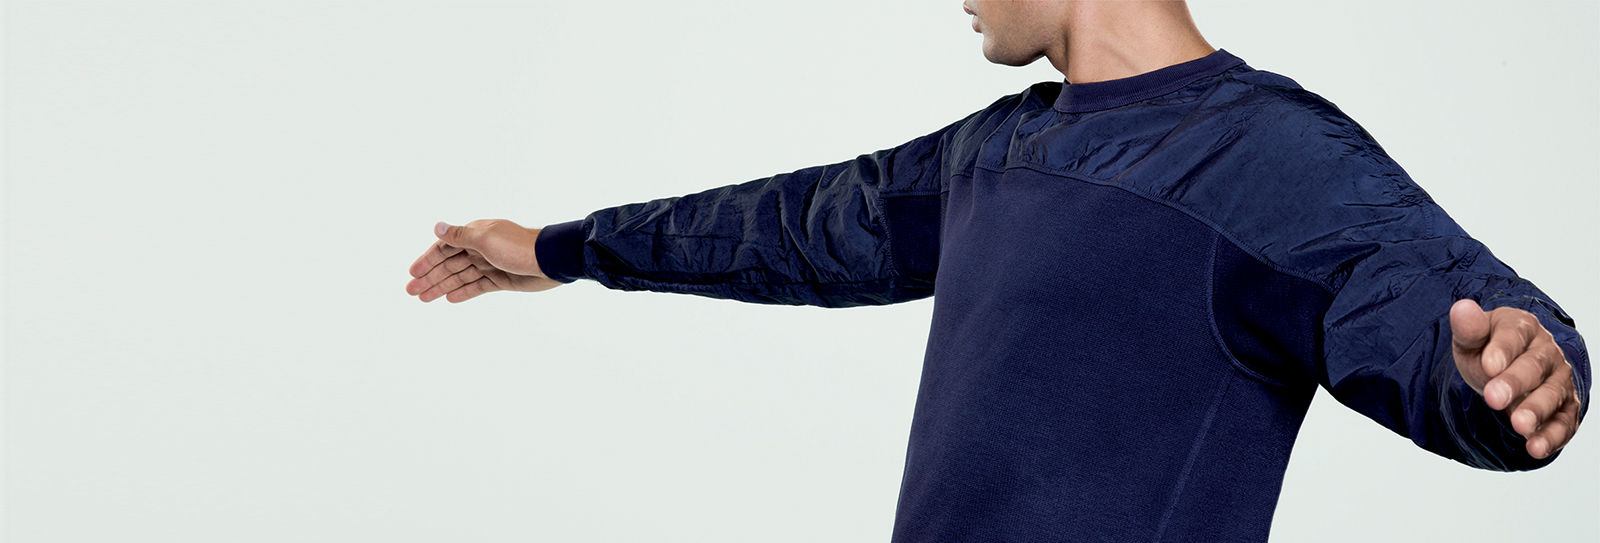 Model wearing navy blue sweatshirt in two different materials with ribbed cuffs and collar.